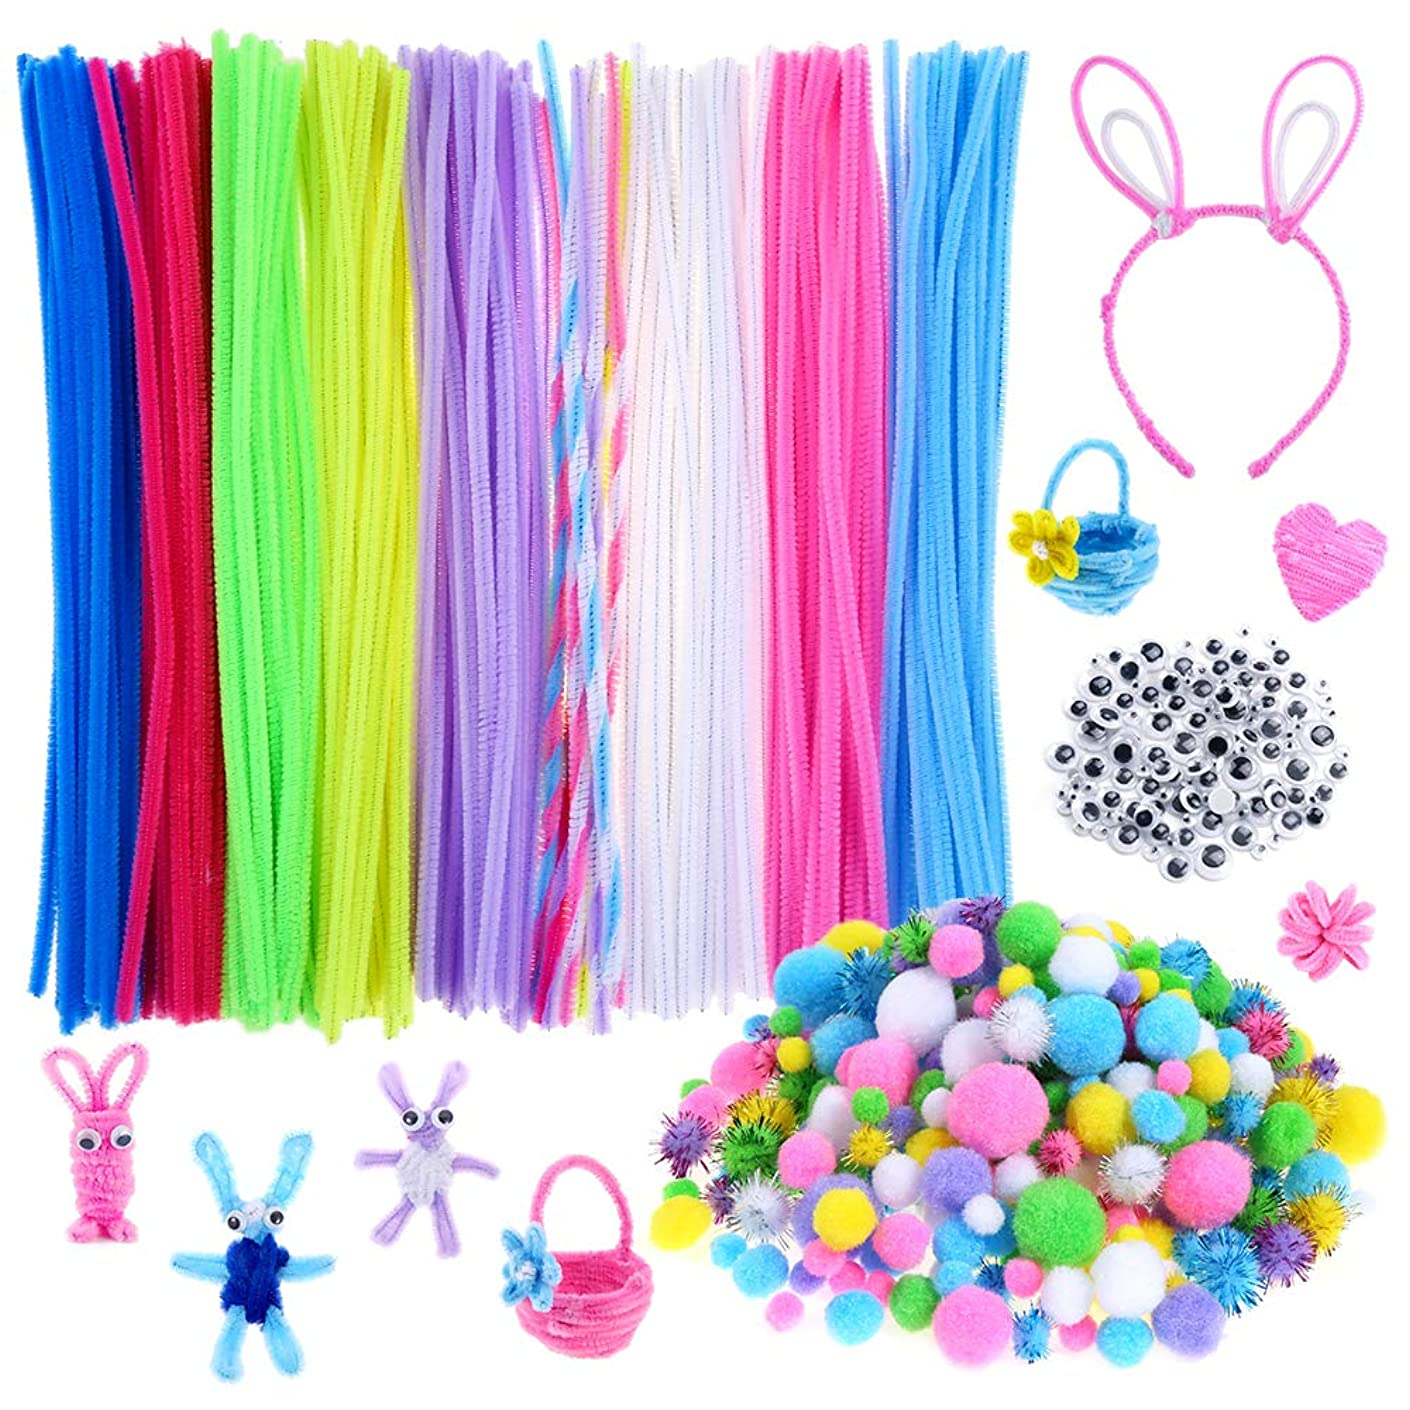 Caydo 700 Pieces Easter Egg Pipe Cleaners Sets, Including 200 Pieces Pipe Cleaners, Assorted Pompoms and Glitter Pompoms for Easter Day Crafts Decorations